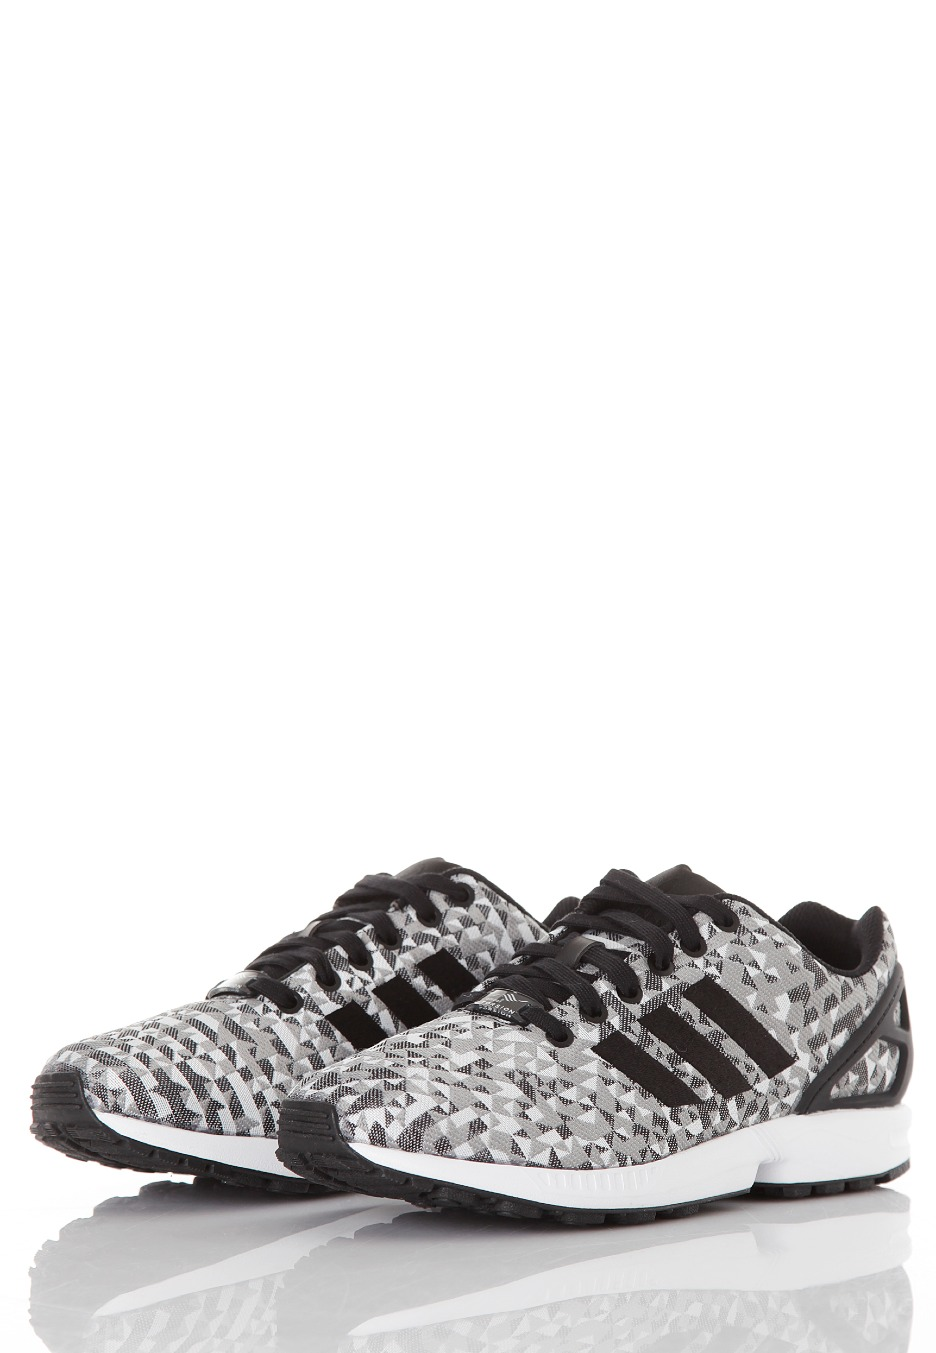 newest a5fb6 4671a ... Adidas - ZX Flux Weave Ftwr White Core Black Charcoal Solid Grey -  Shoes ...